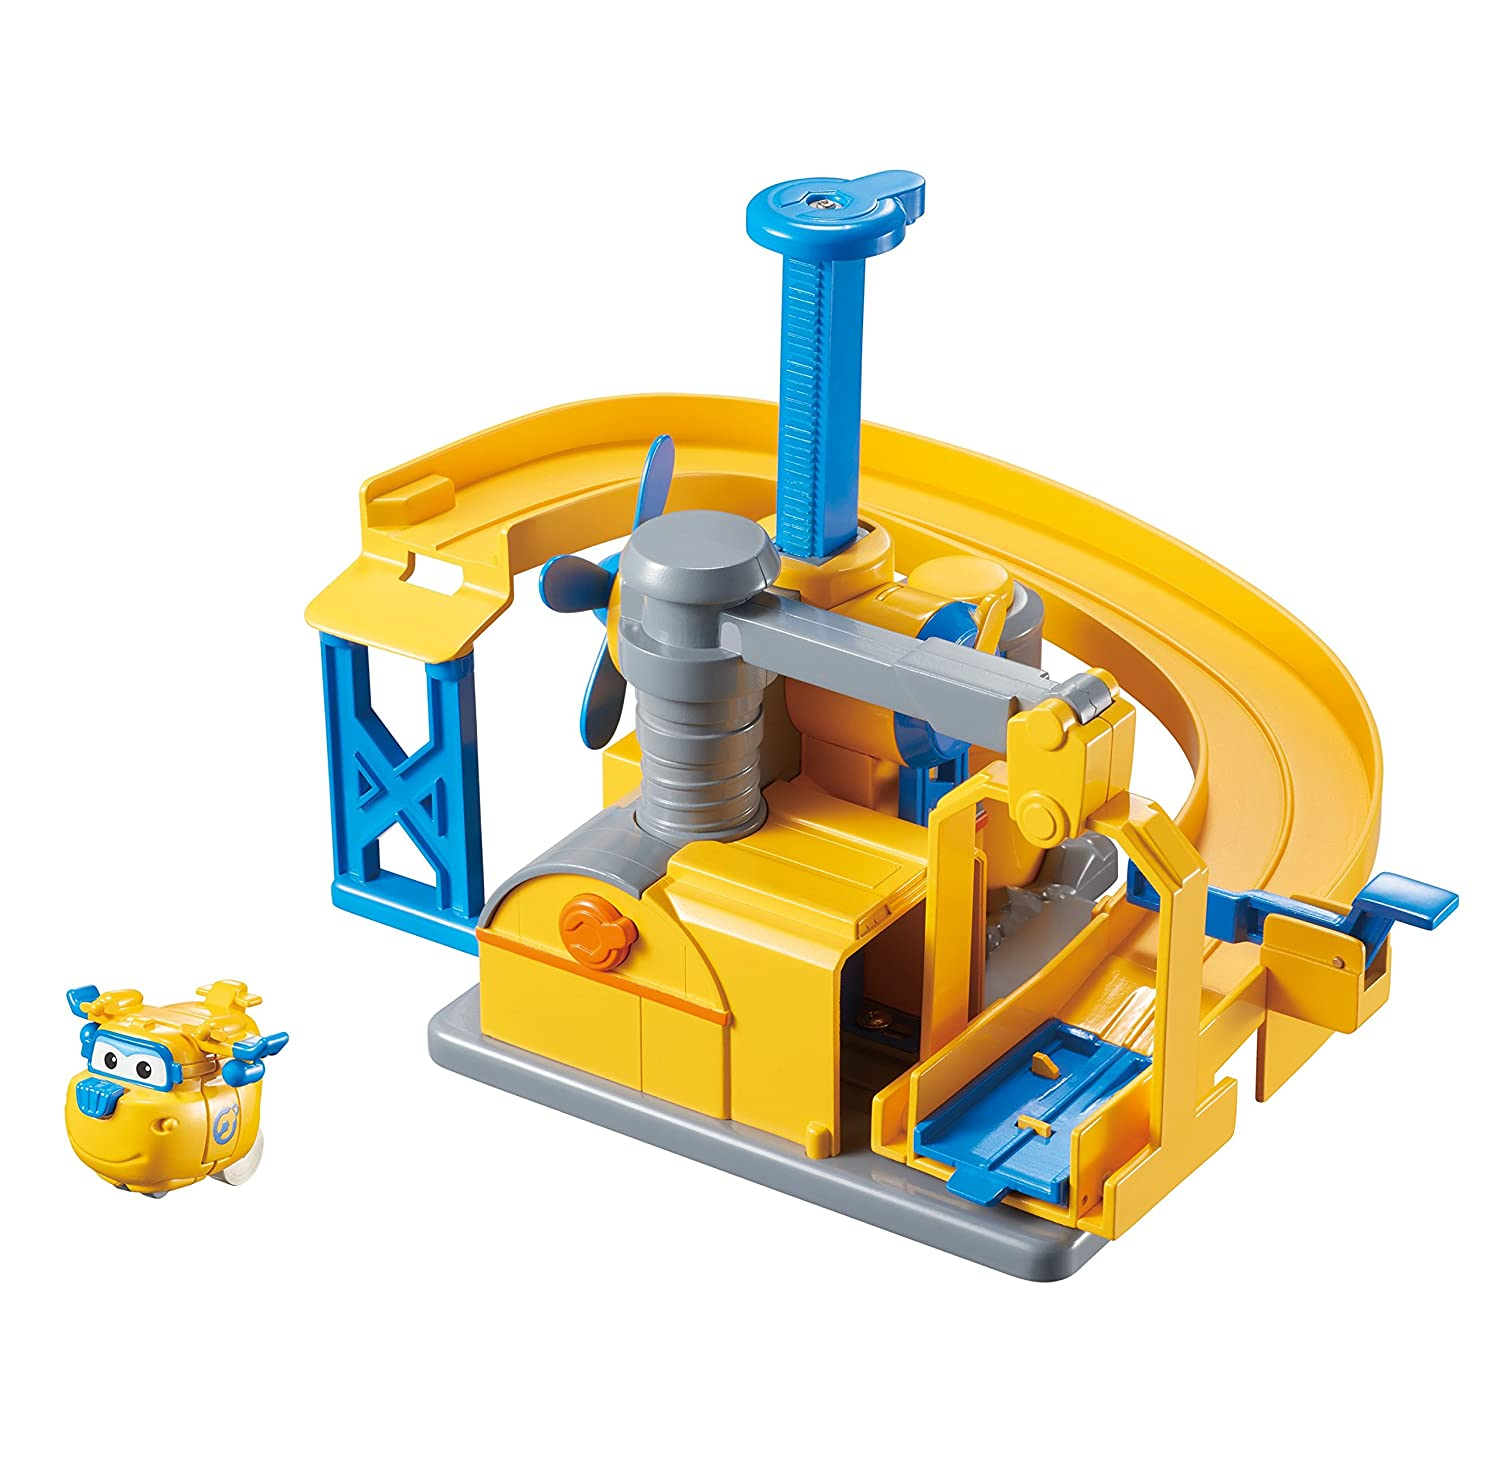 Super Wings - Small Playset with Pop-Transform-Donnie Playset